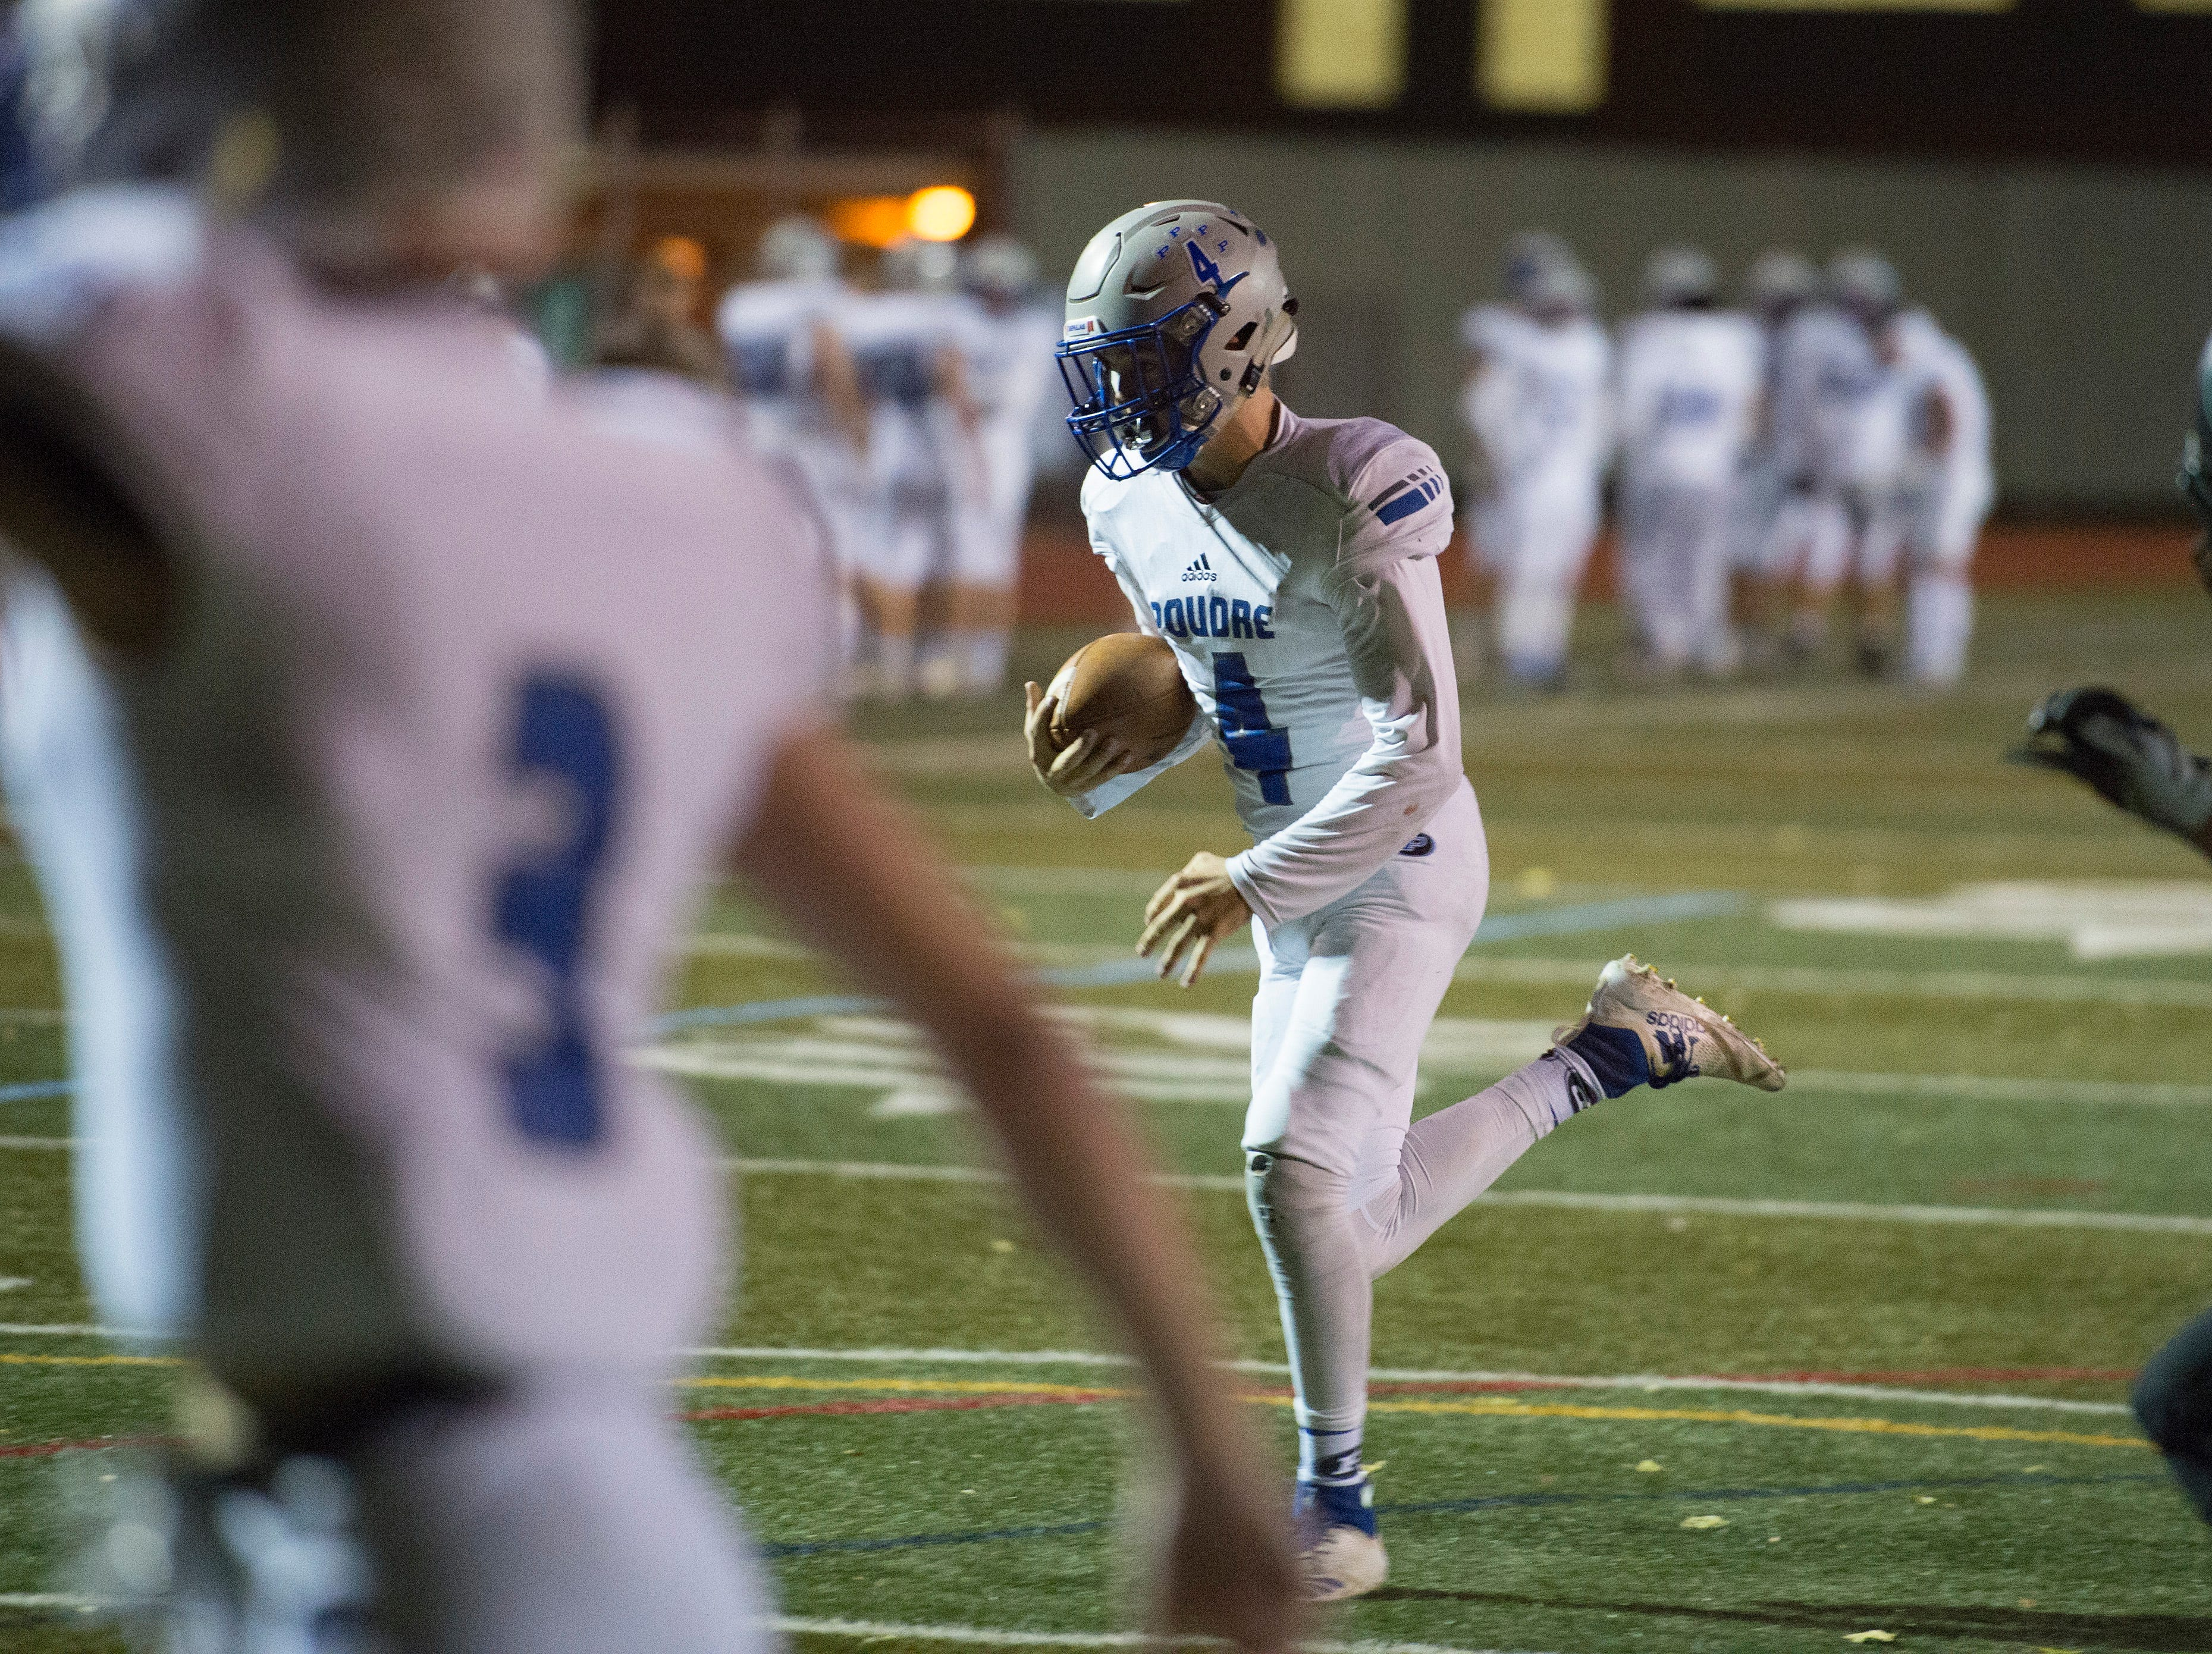 Poudre's Nate Wood runs the ball into the end zone for a 2-point conversion during a game against Fossil Ridge at French Field on Friday, October 26, 2018.